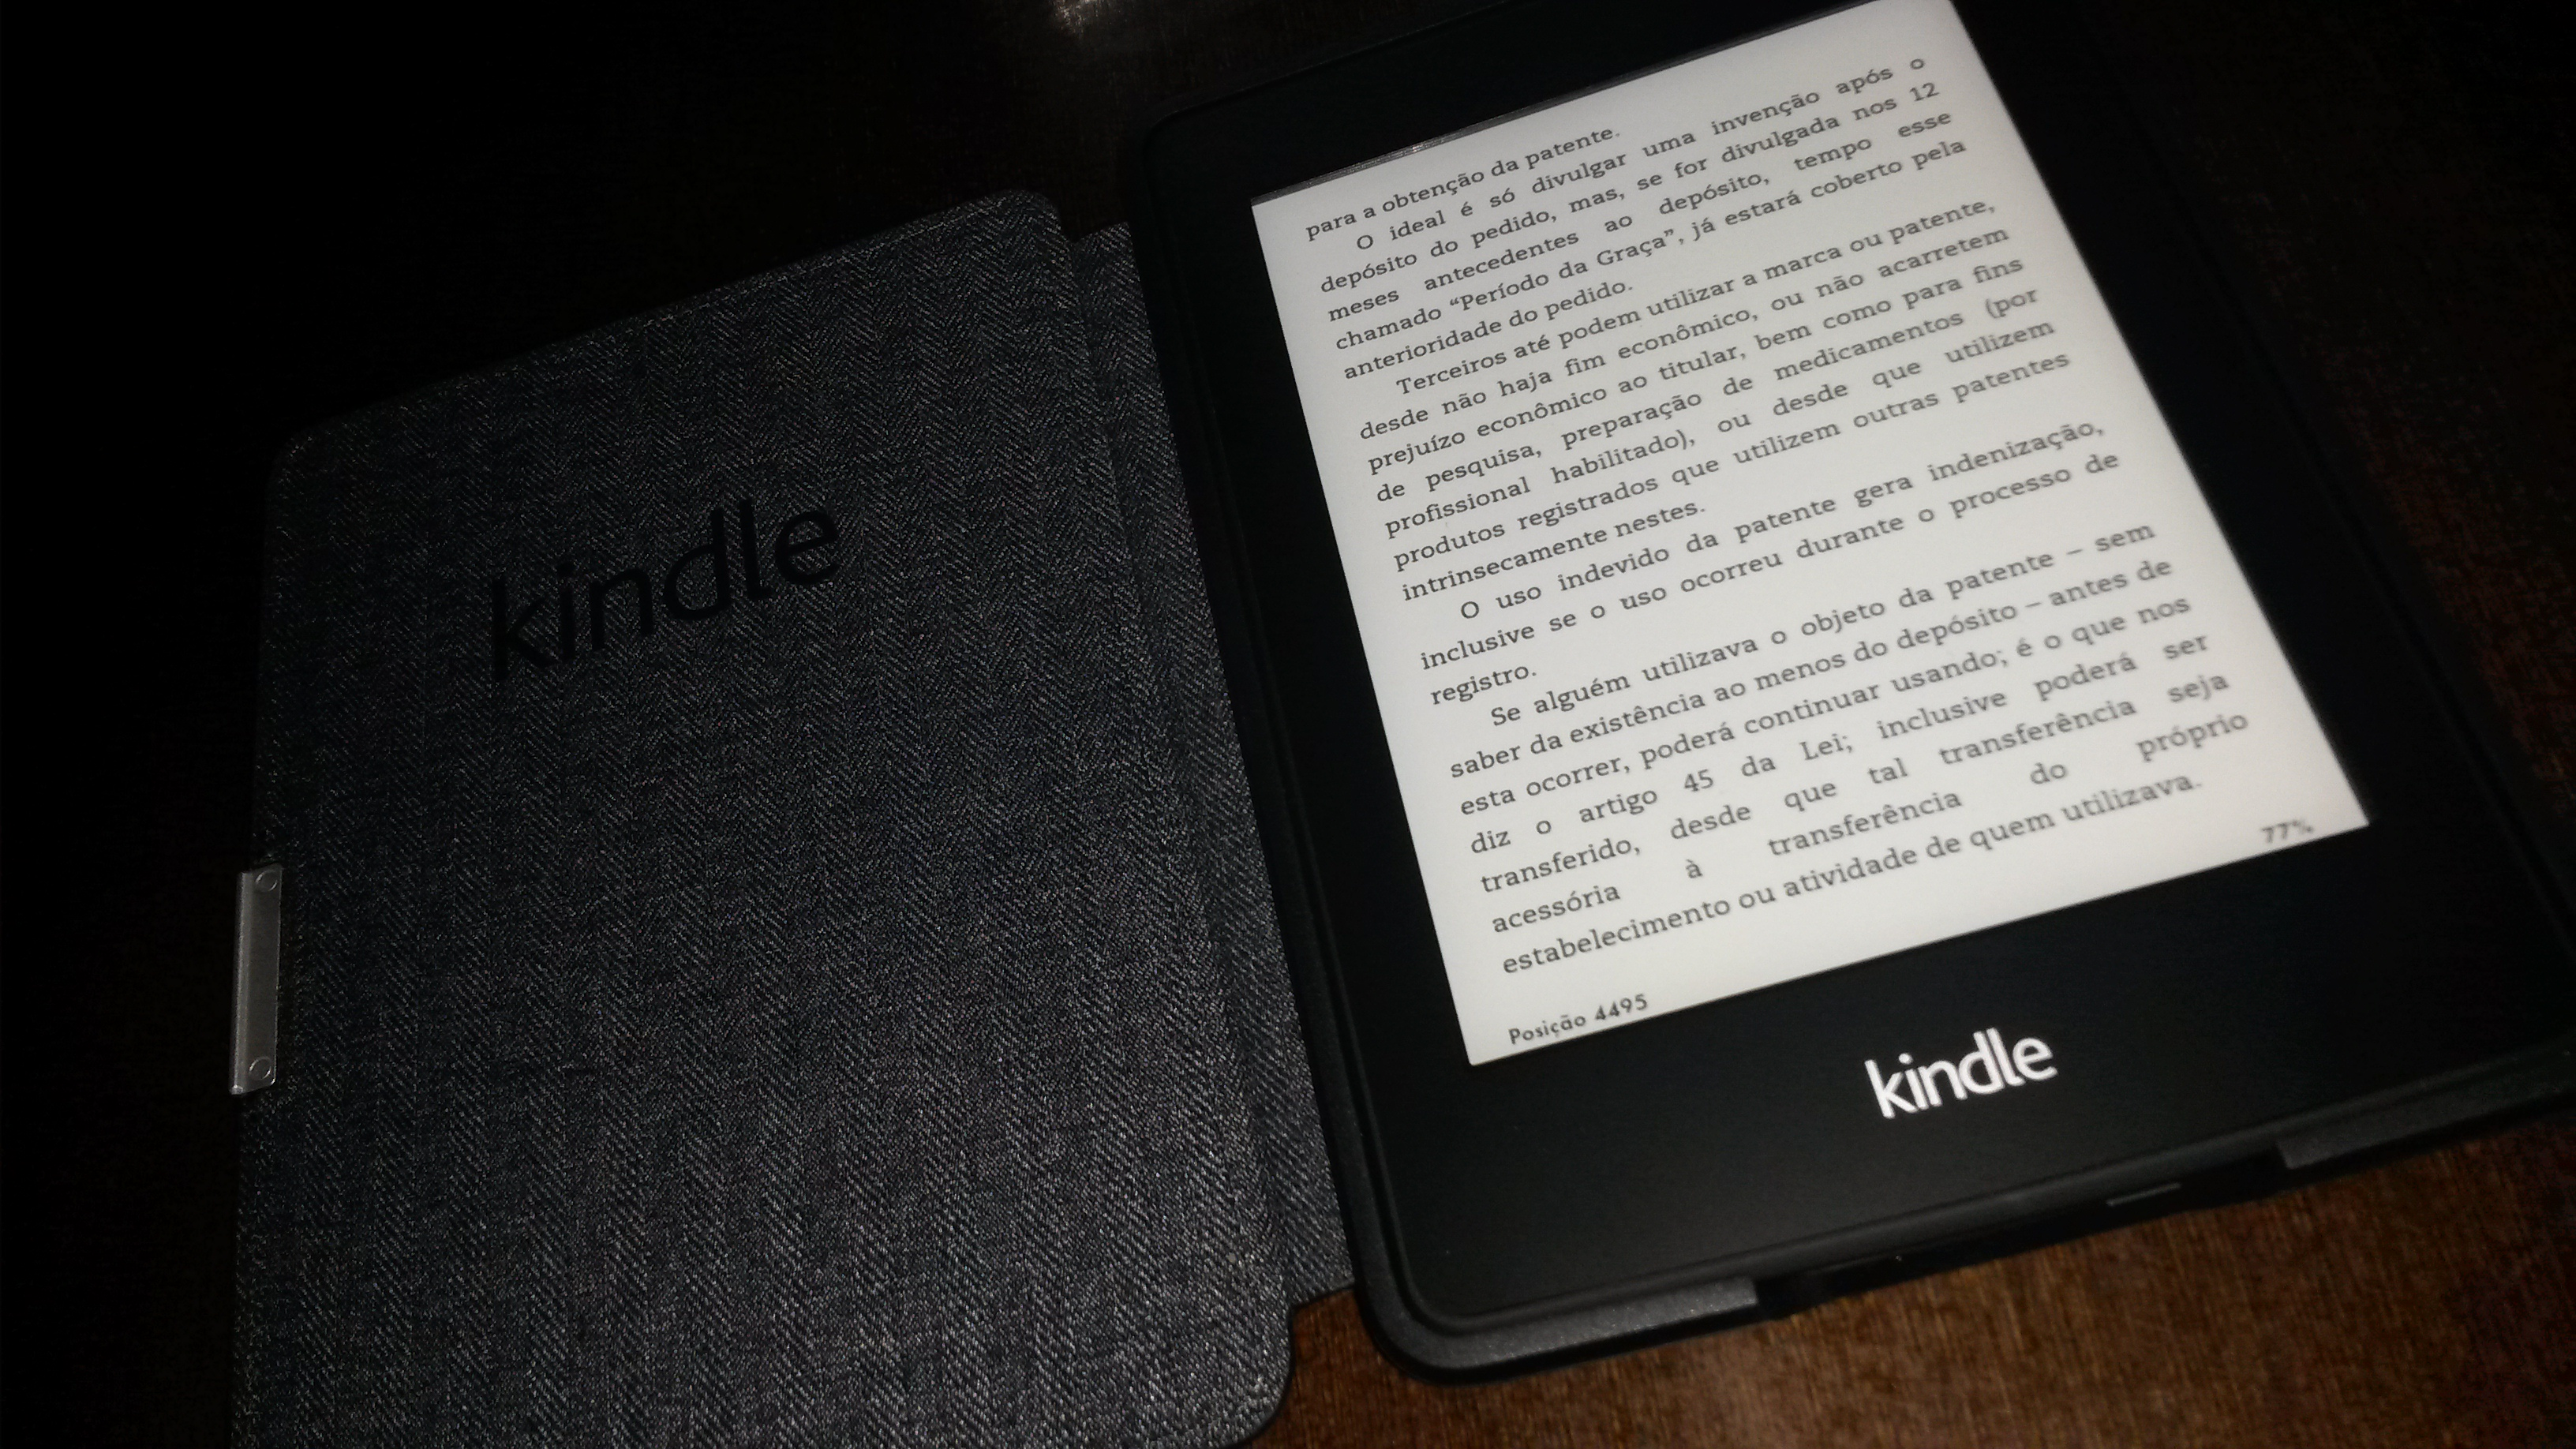 Kindle Paperwhite (eReader da Amazon) [resenha]